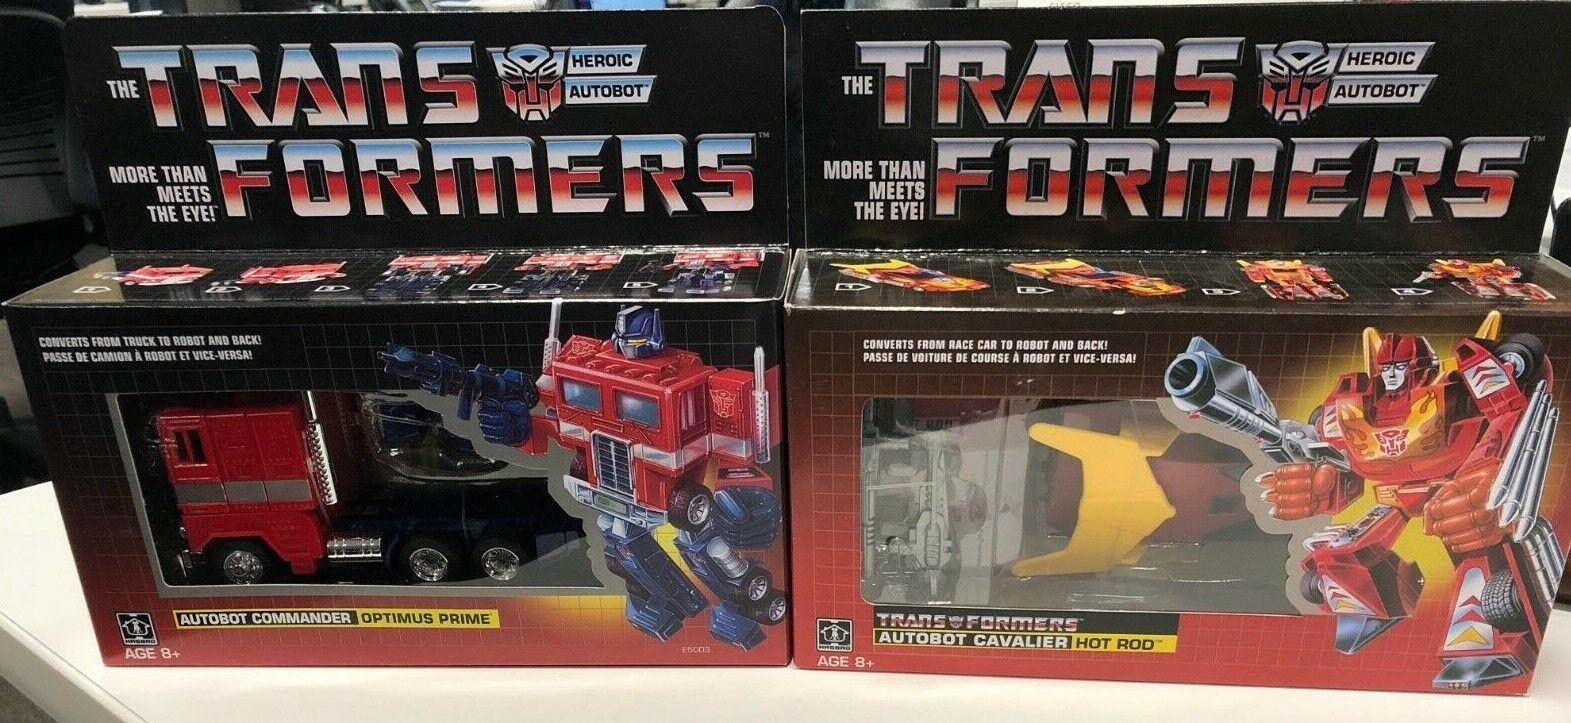 TRANSFORMERS G1 REISSUE OPTIMUS PRIME and HOT ROD WALMART EXCLUSIVES Free ship